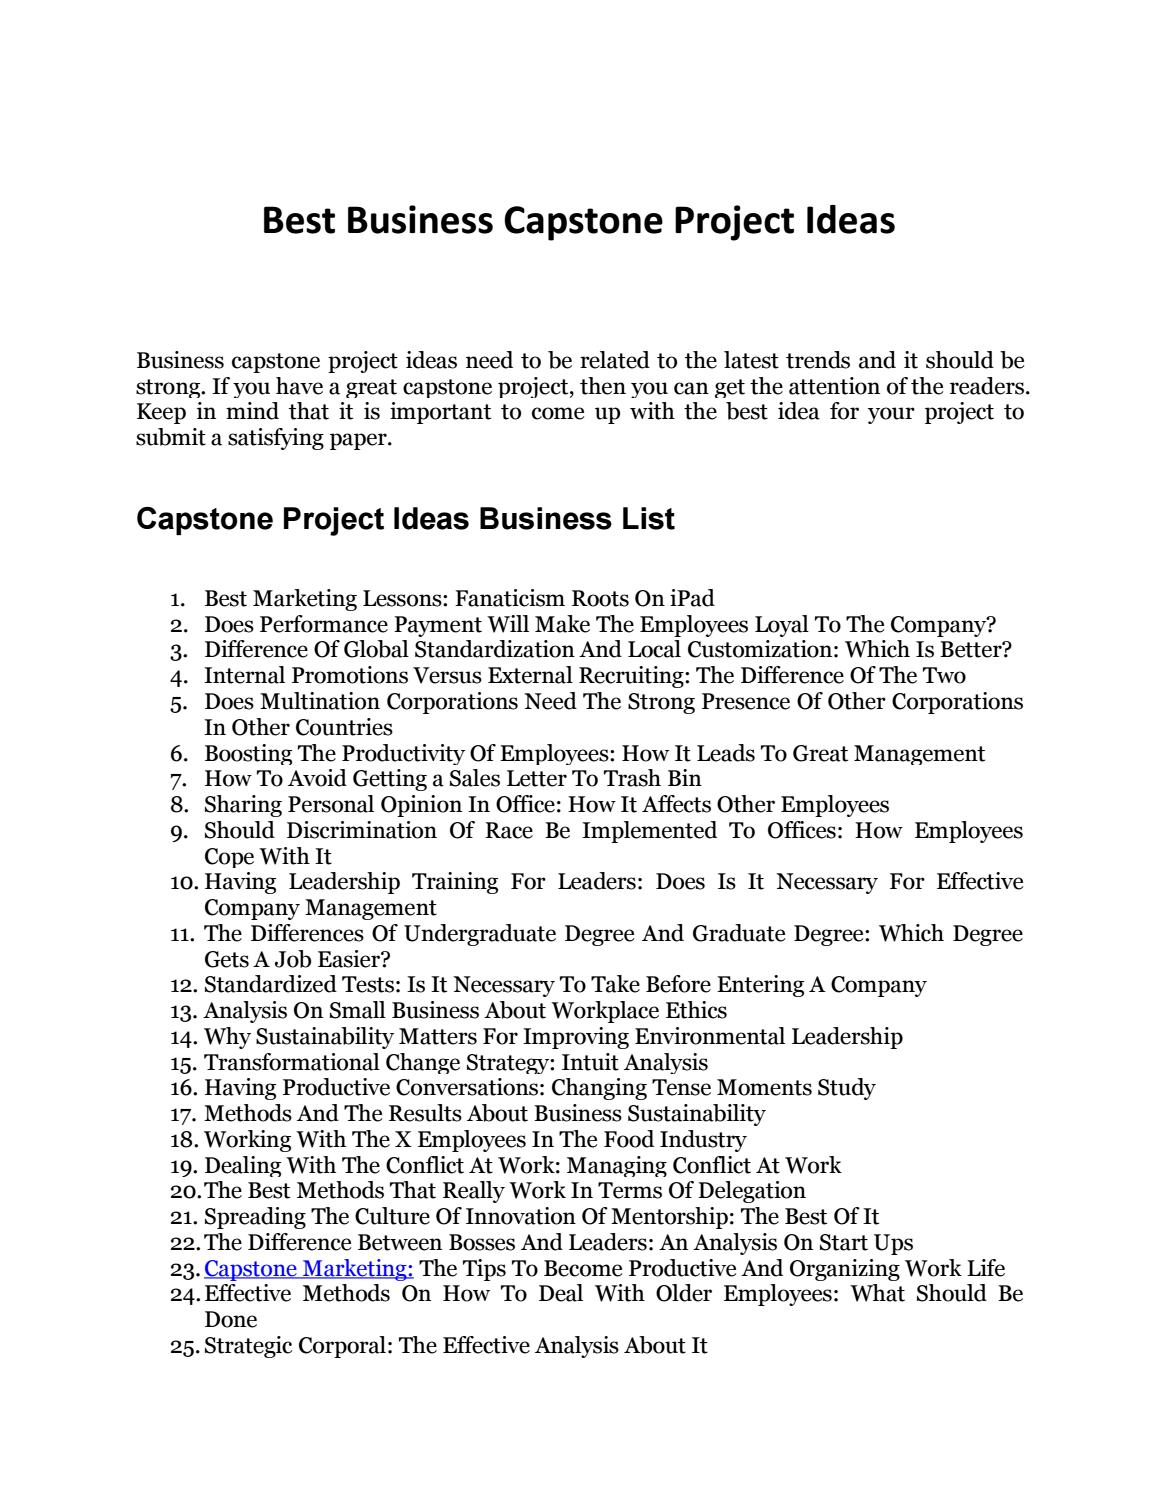 Professional Capstone Papers Writing Services